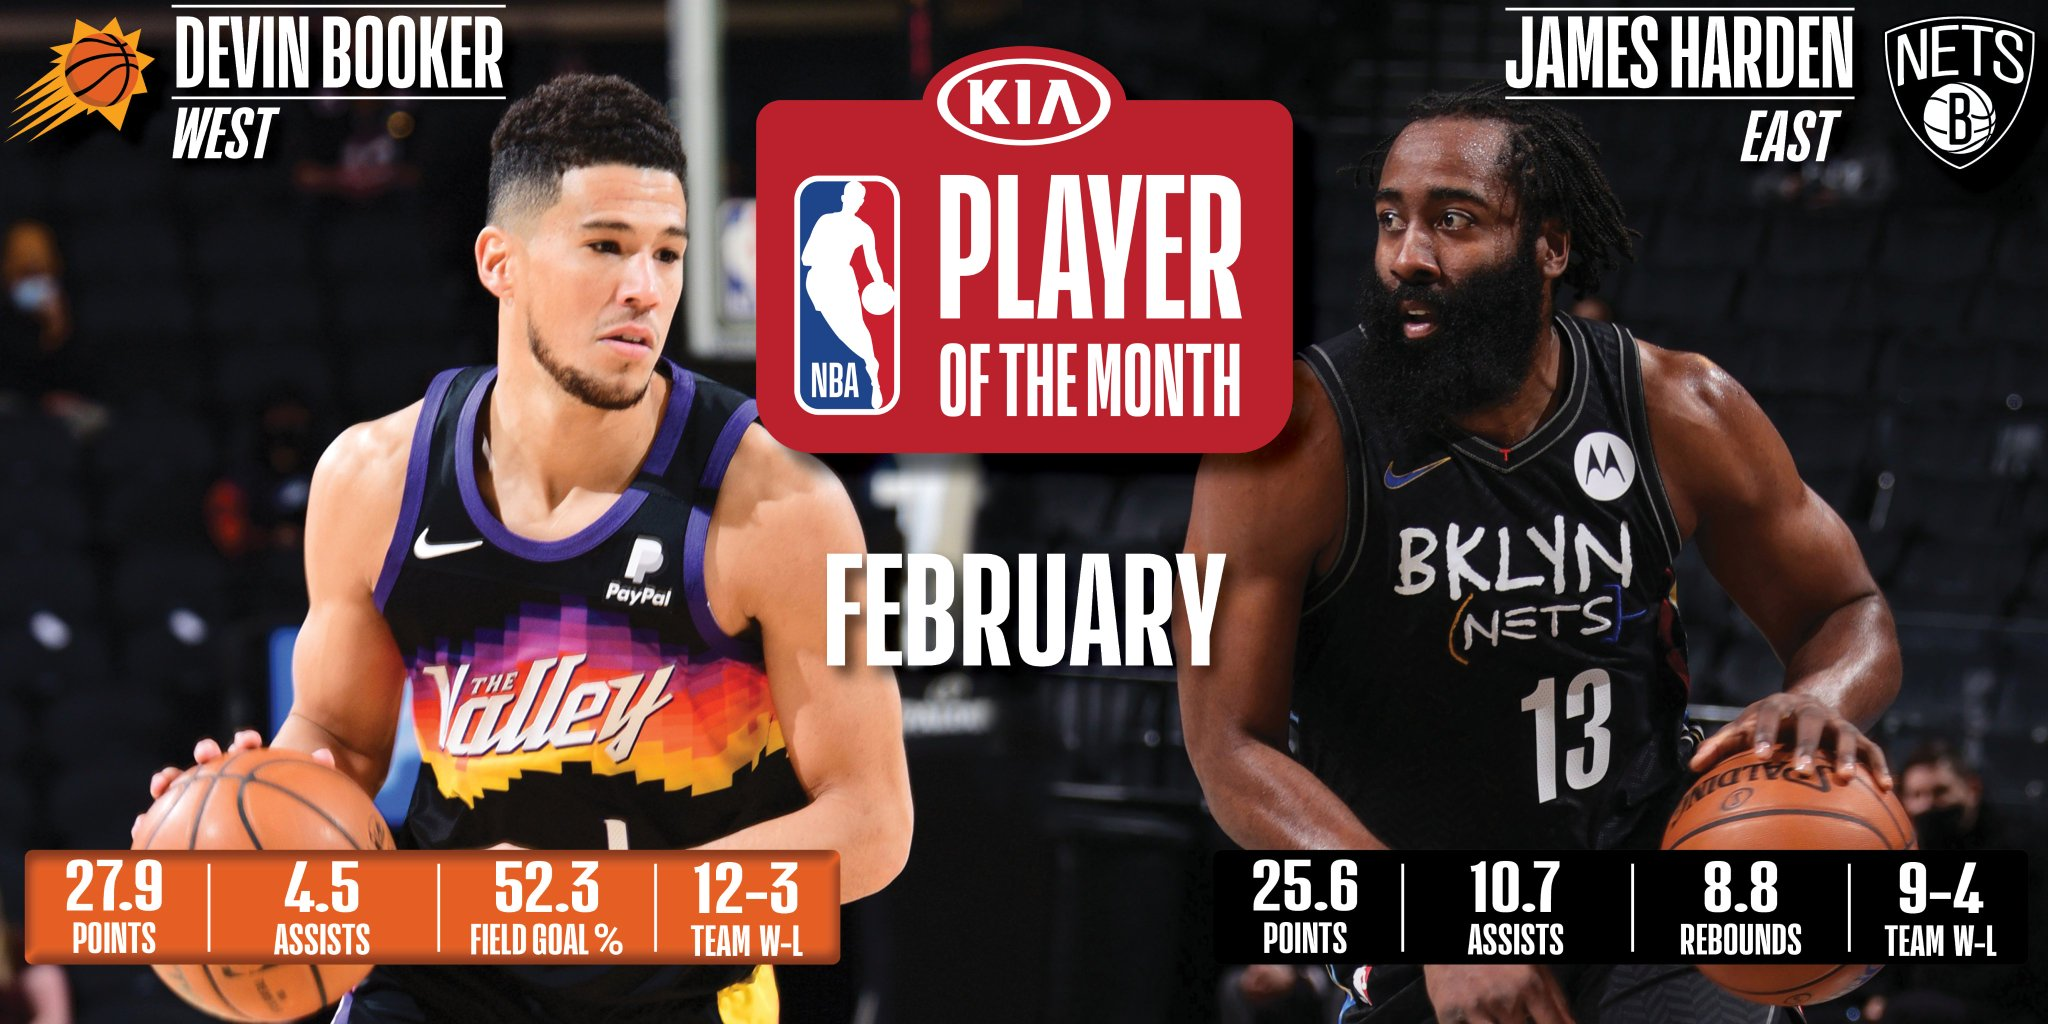 Devin Booker, James Harden named Kia NBA Players of the Month